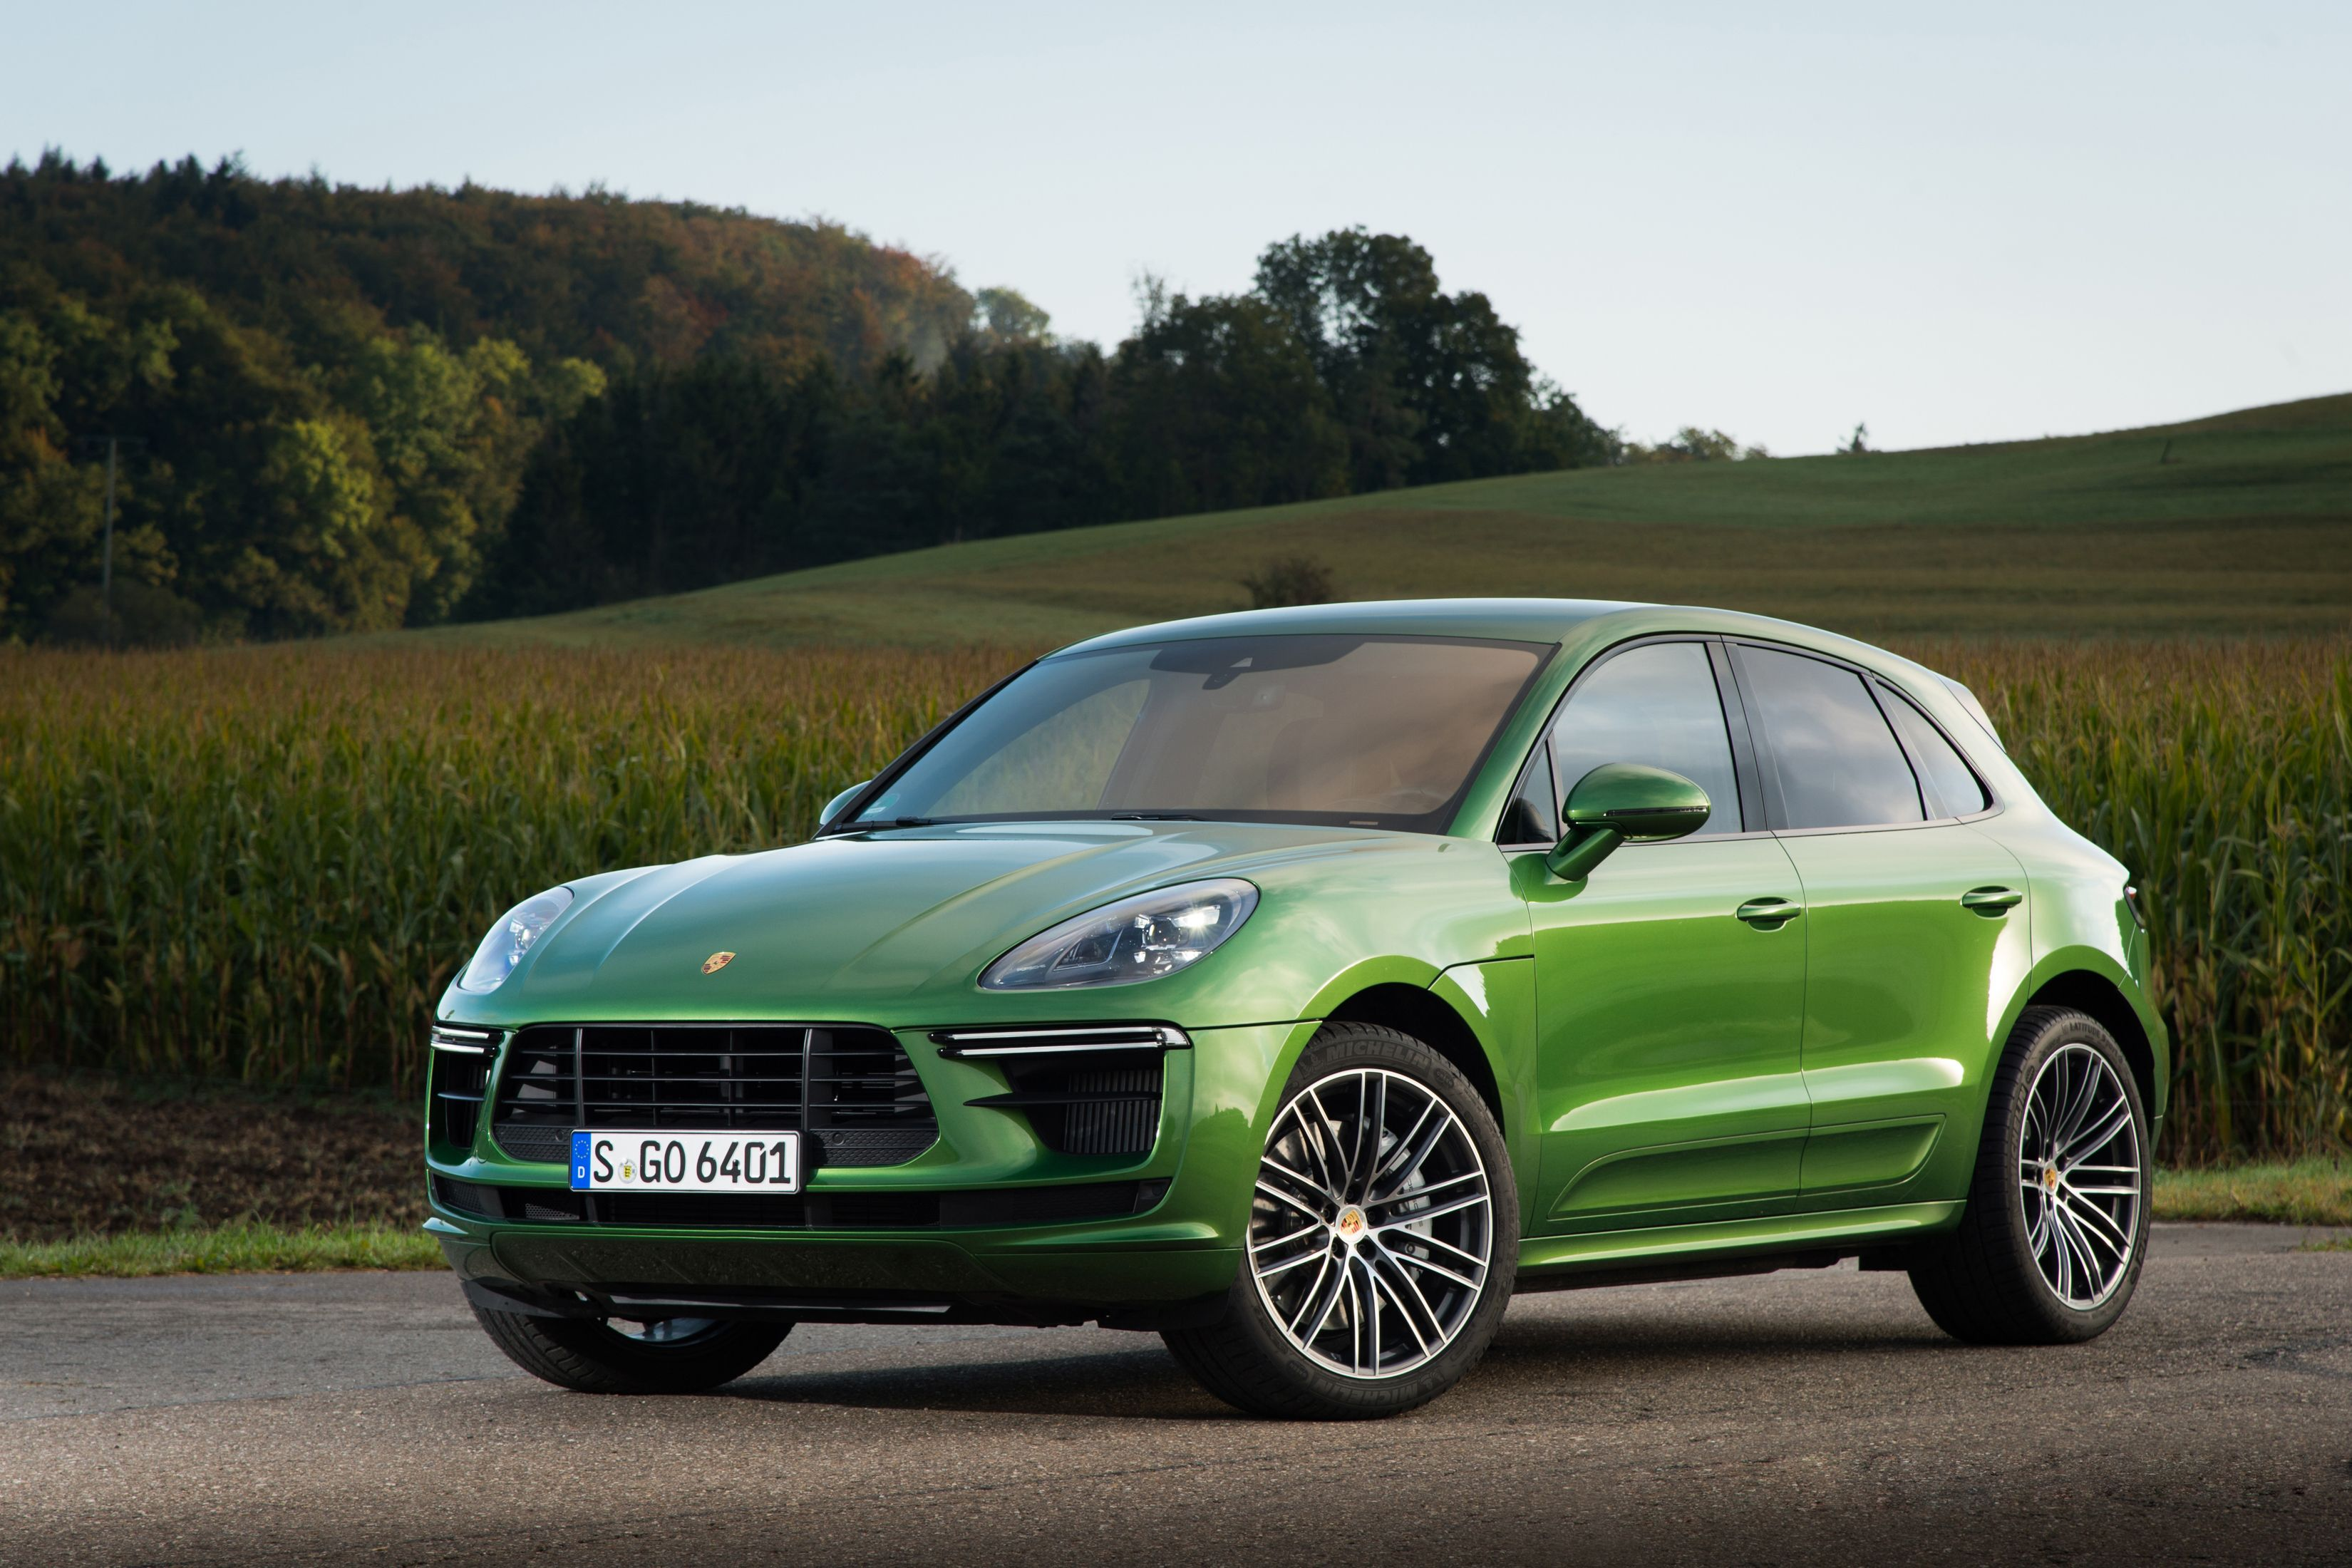 2020 Porsche Macan Turbo Review, Pricing, and Specs